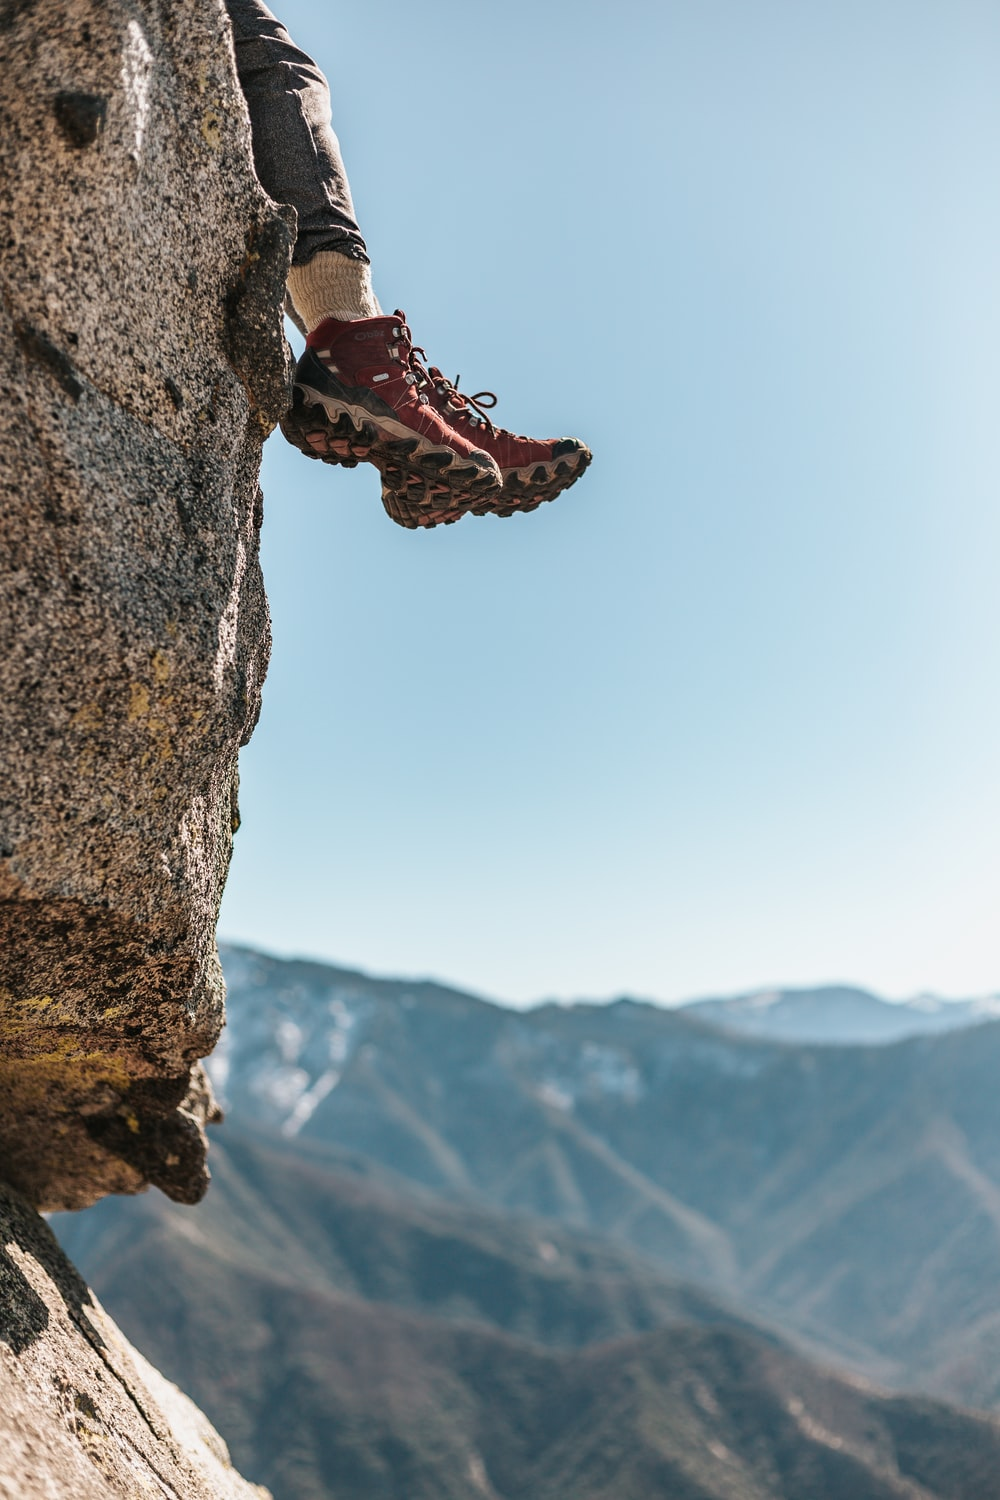 person wearing pair of red-and-white hiking shoes sitting on rocky cliff across mountains during daytime